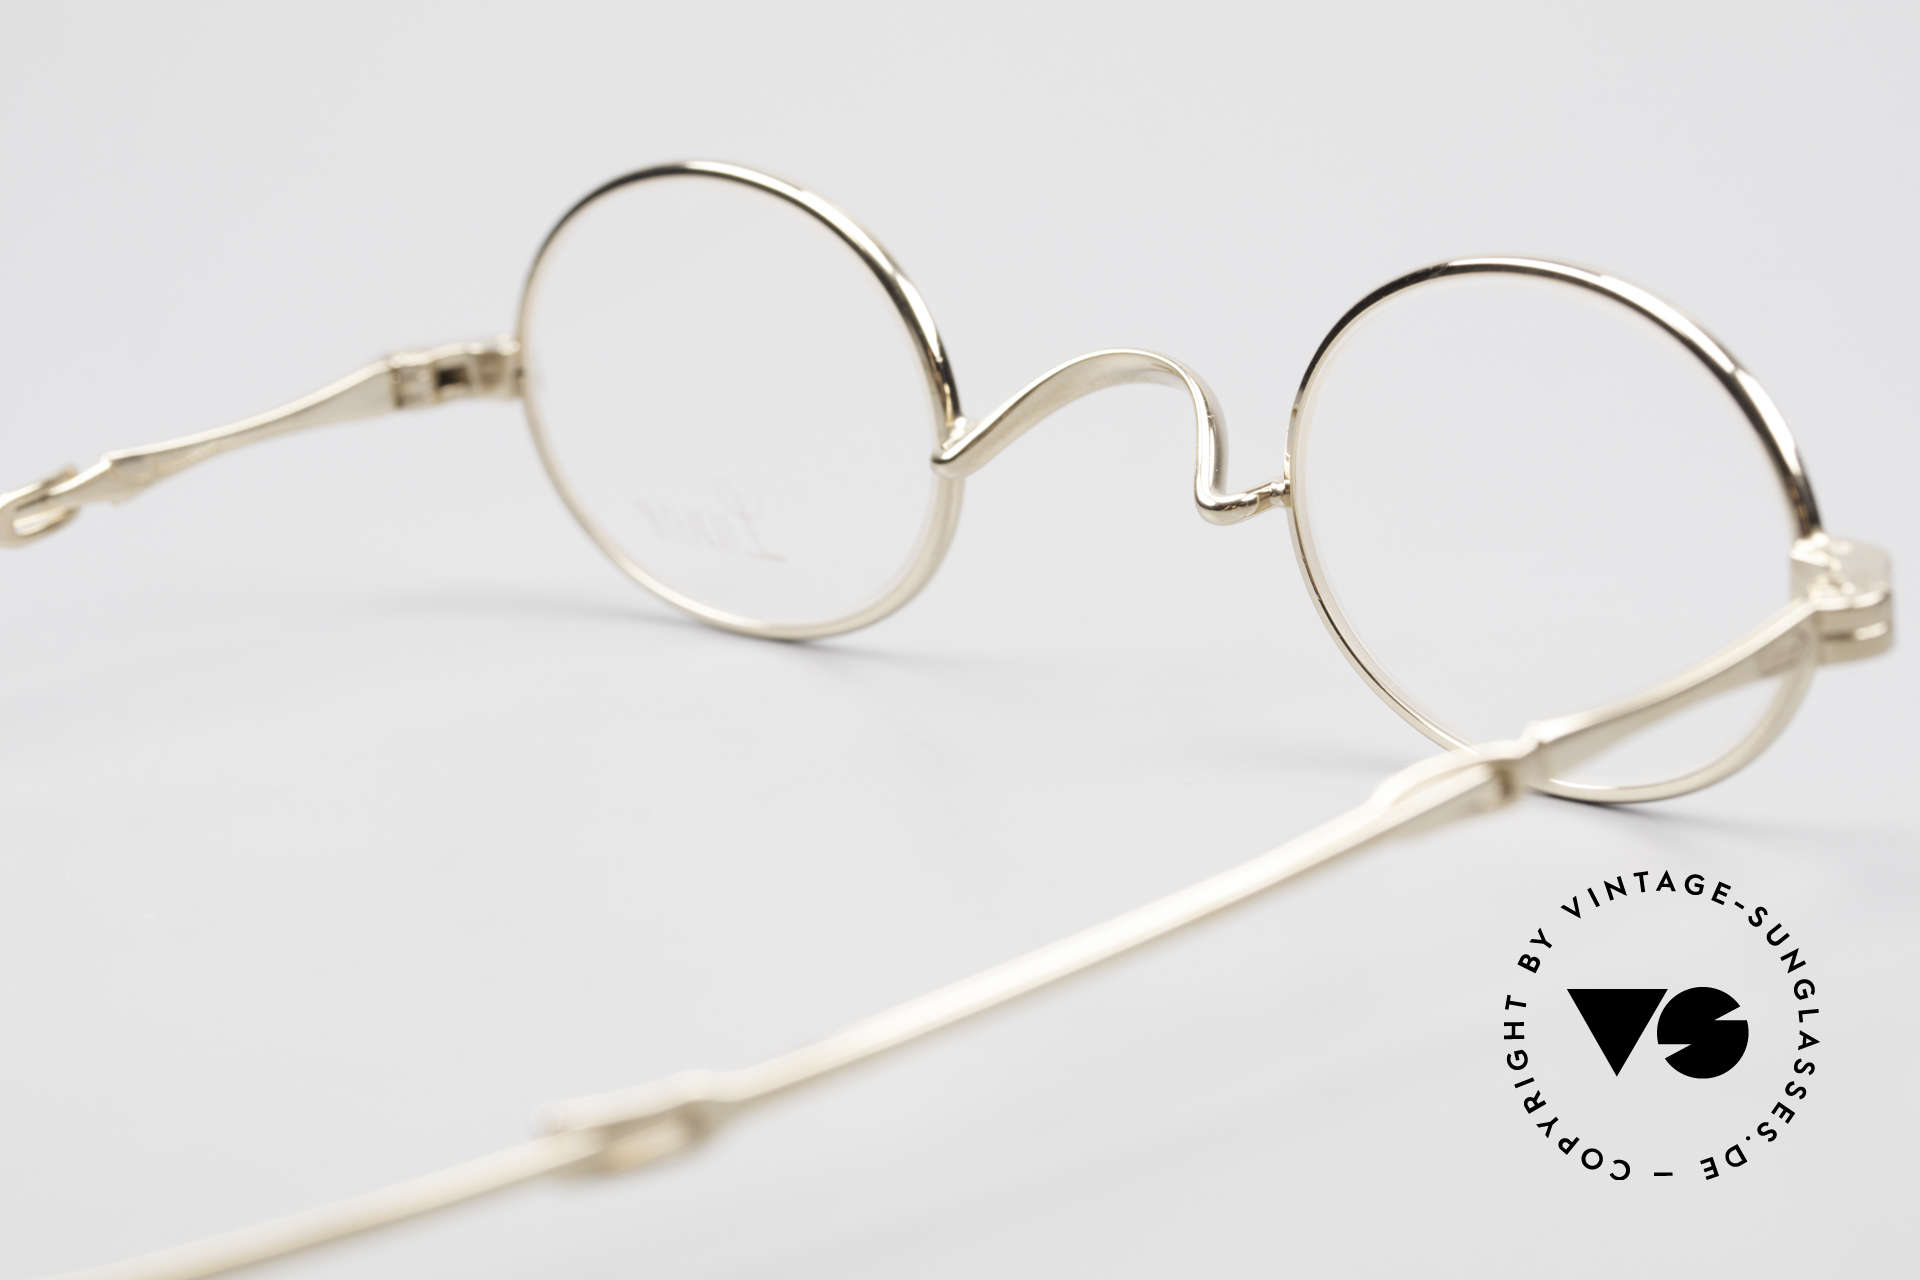 Lunor I 04 Telescopic XS Oval Glasses Slide Temples, Size: extra small, Made for Men and Women